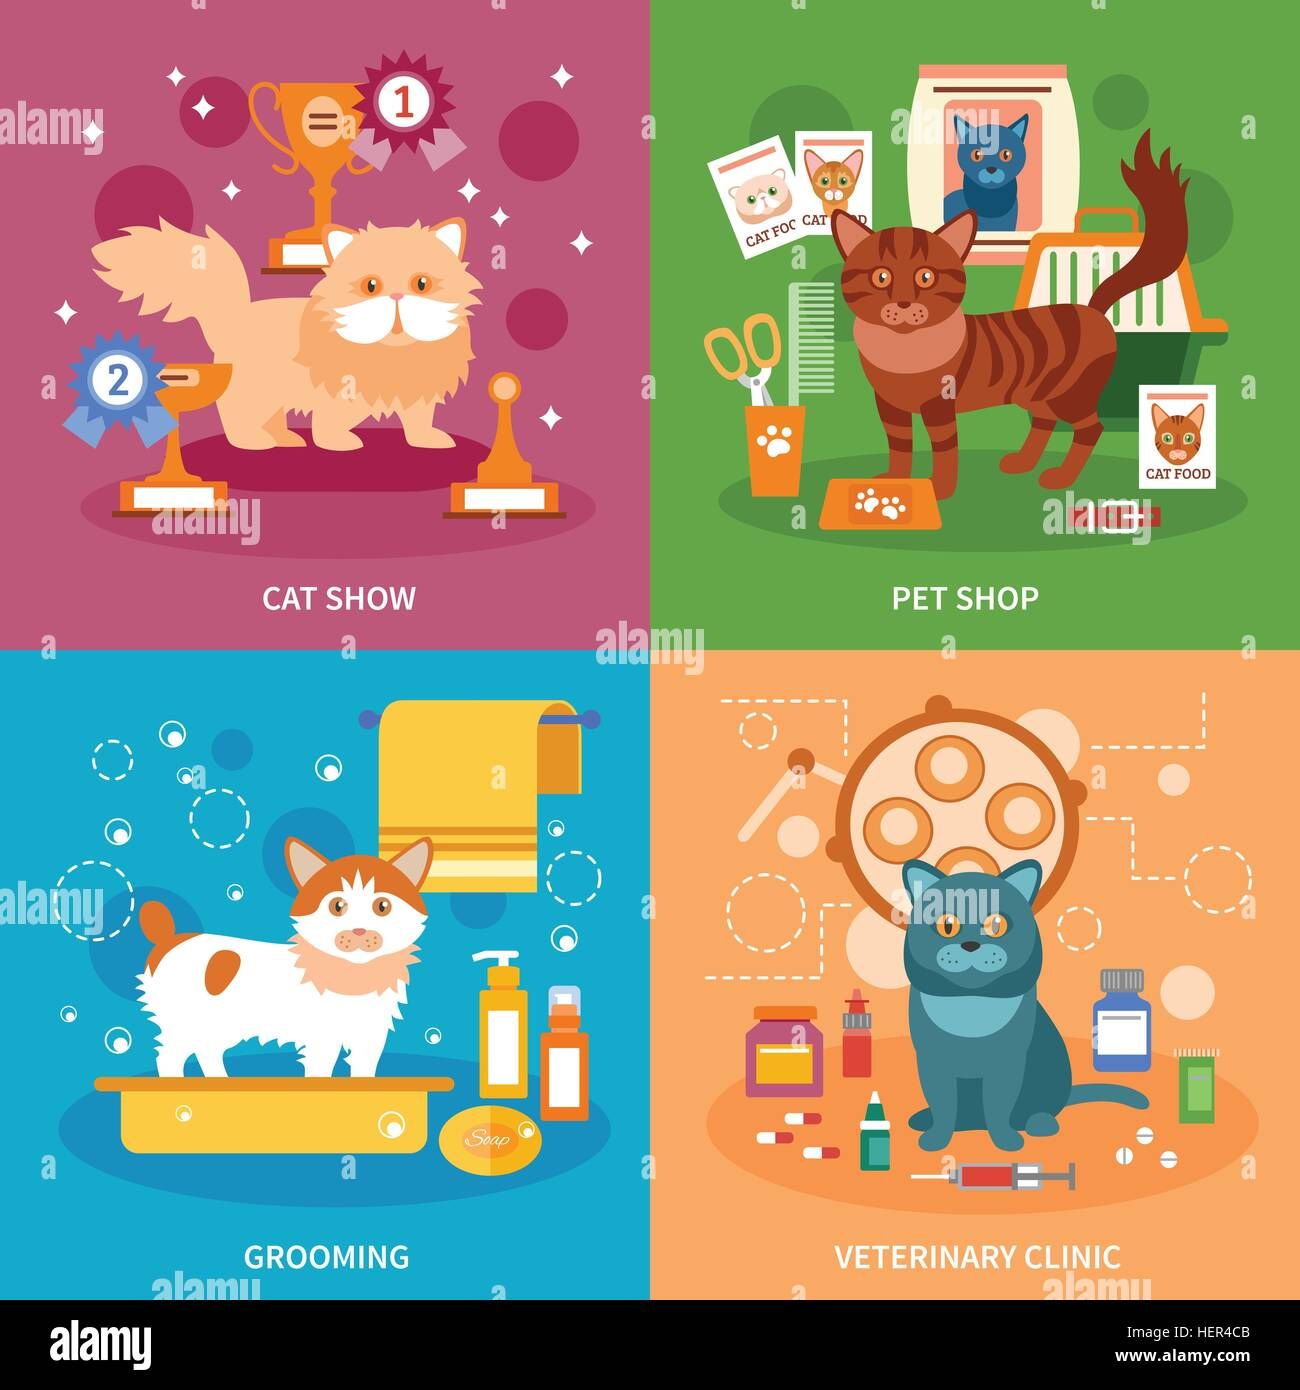 Cats concept set. Cats design concept set with pet grooming and veterinary clinic flat icons isolated vector illustration - Stock Vector